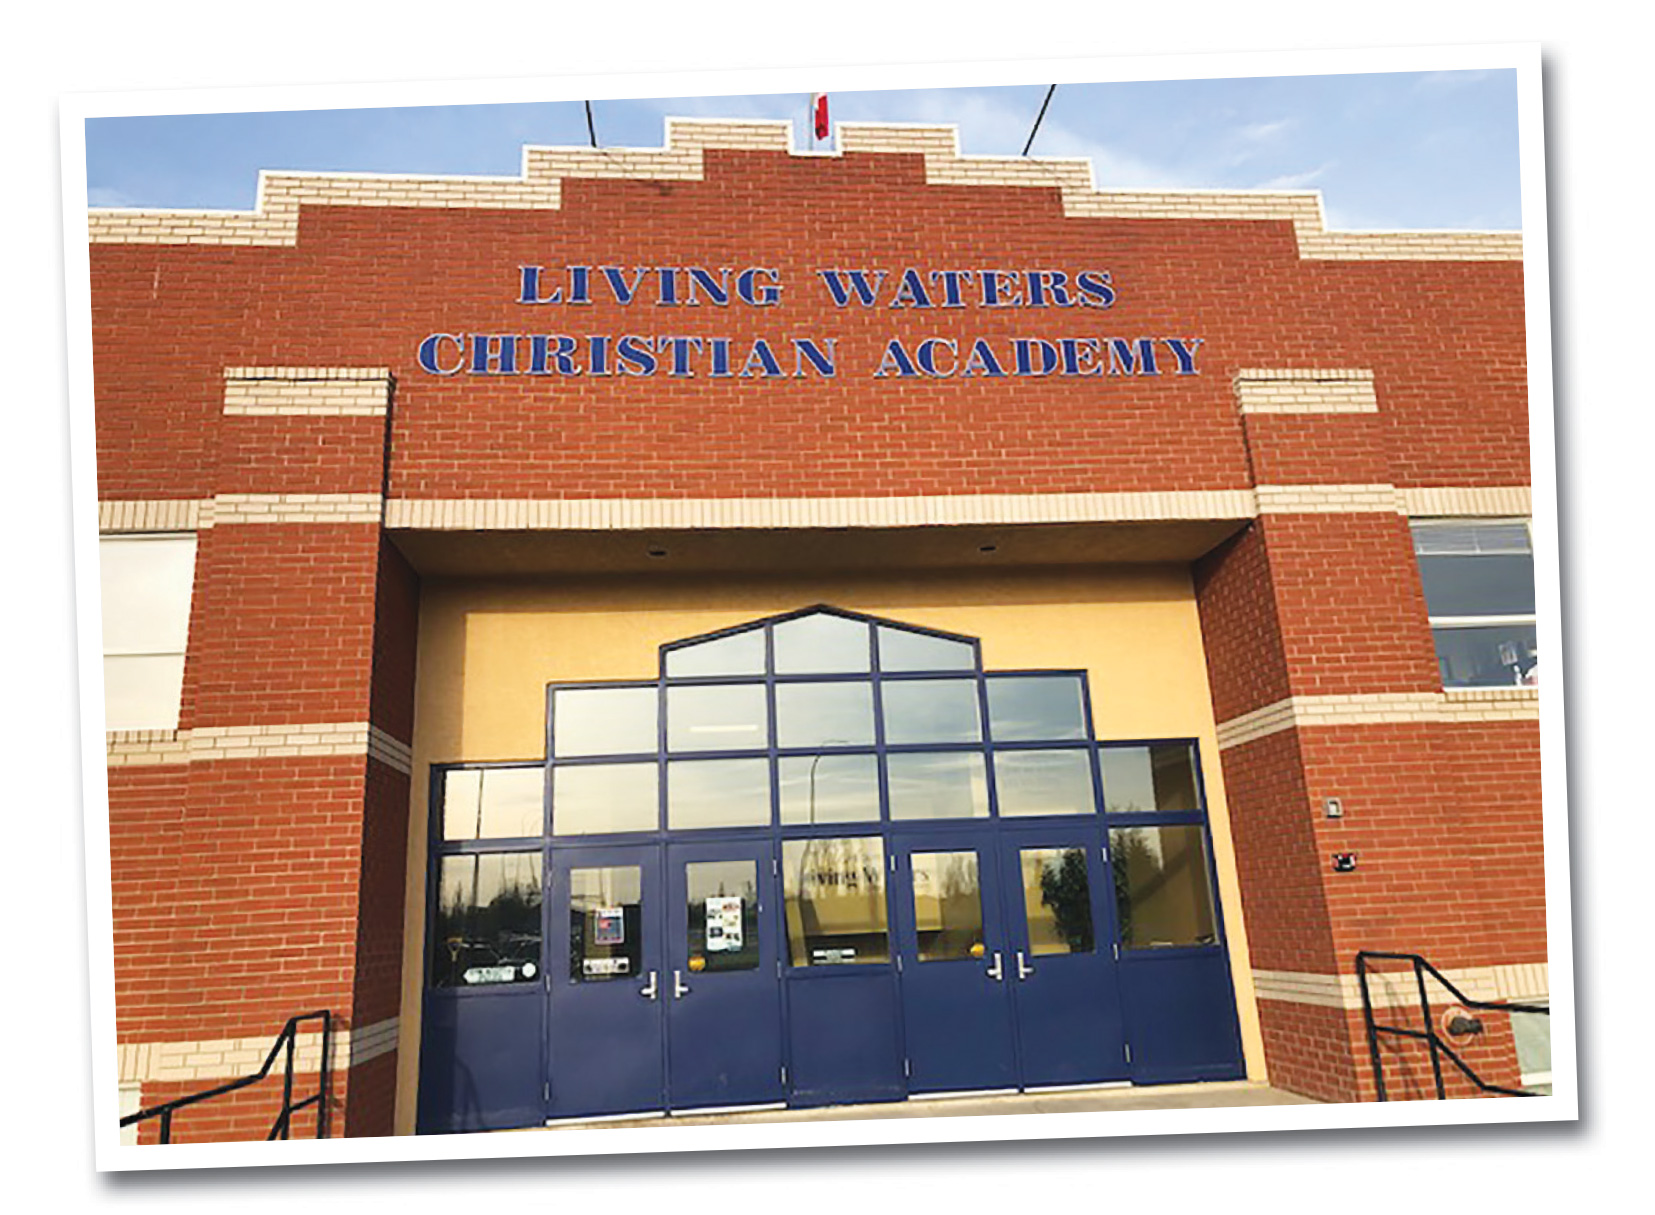 Leadership at Living Waters prioritizes alignment with the school's vision, mission, and core values